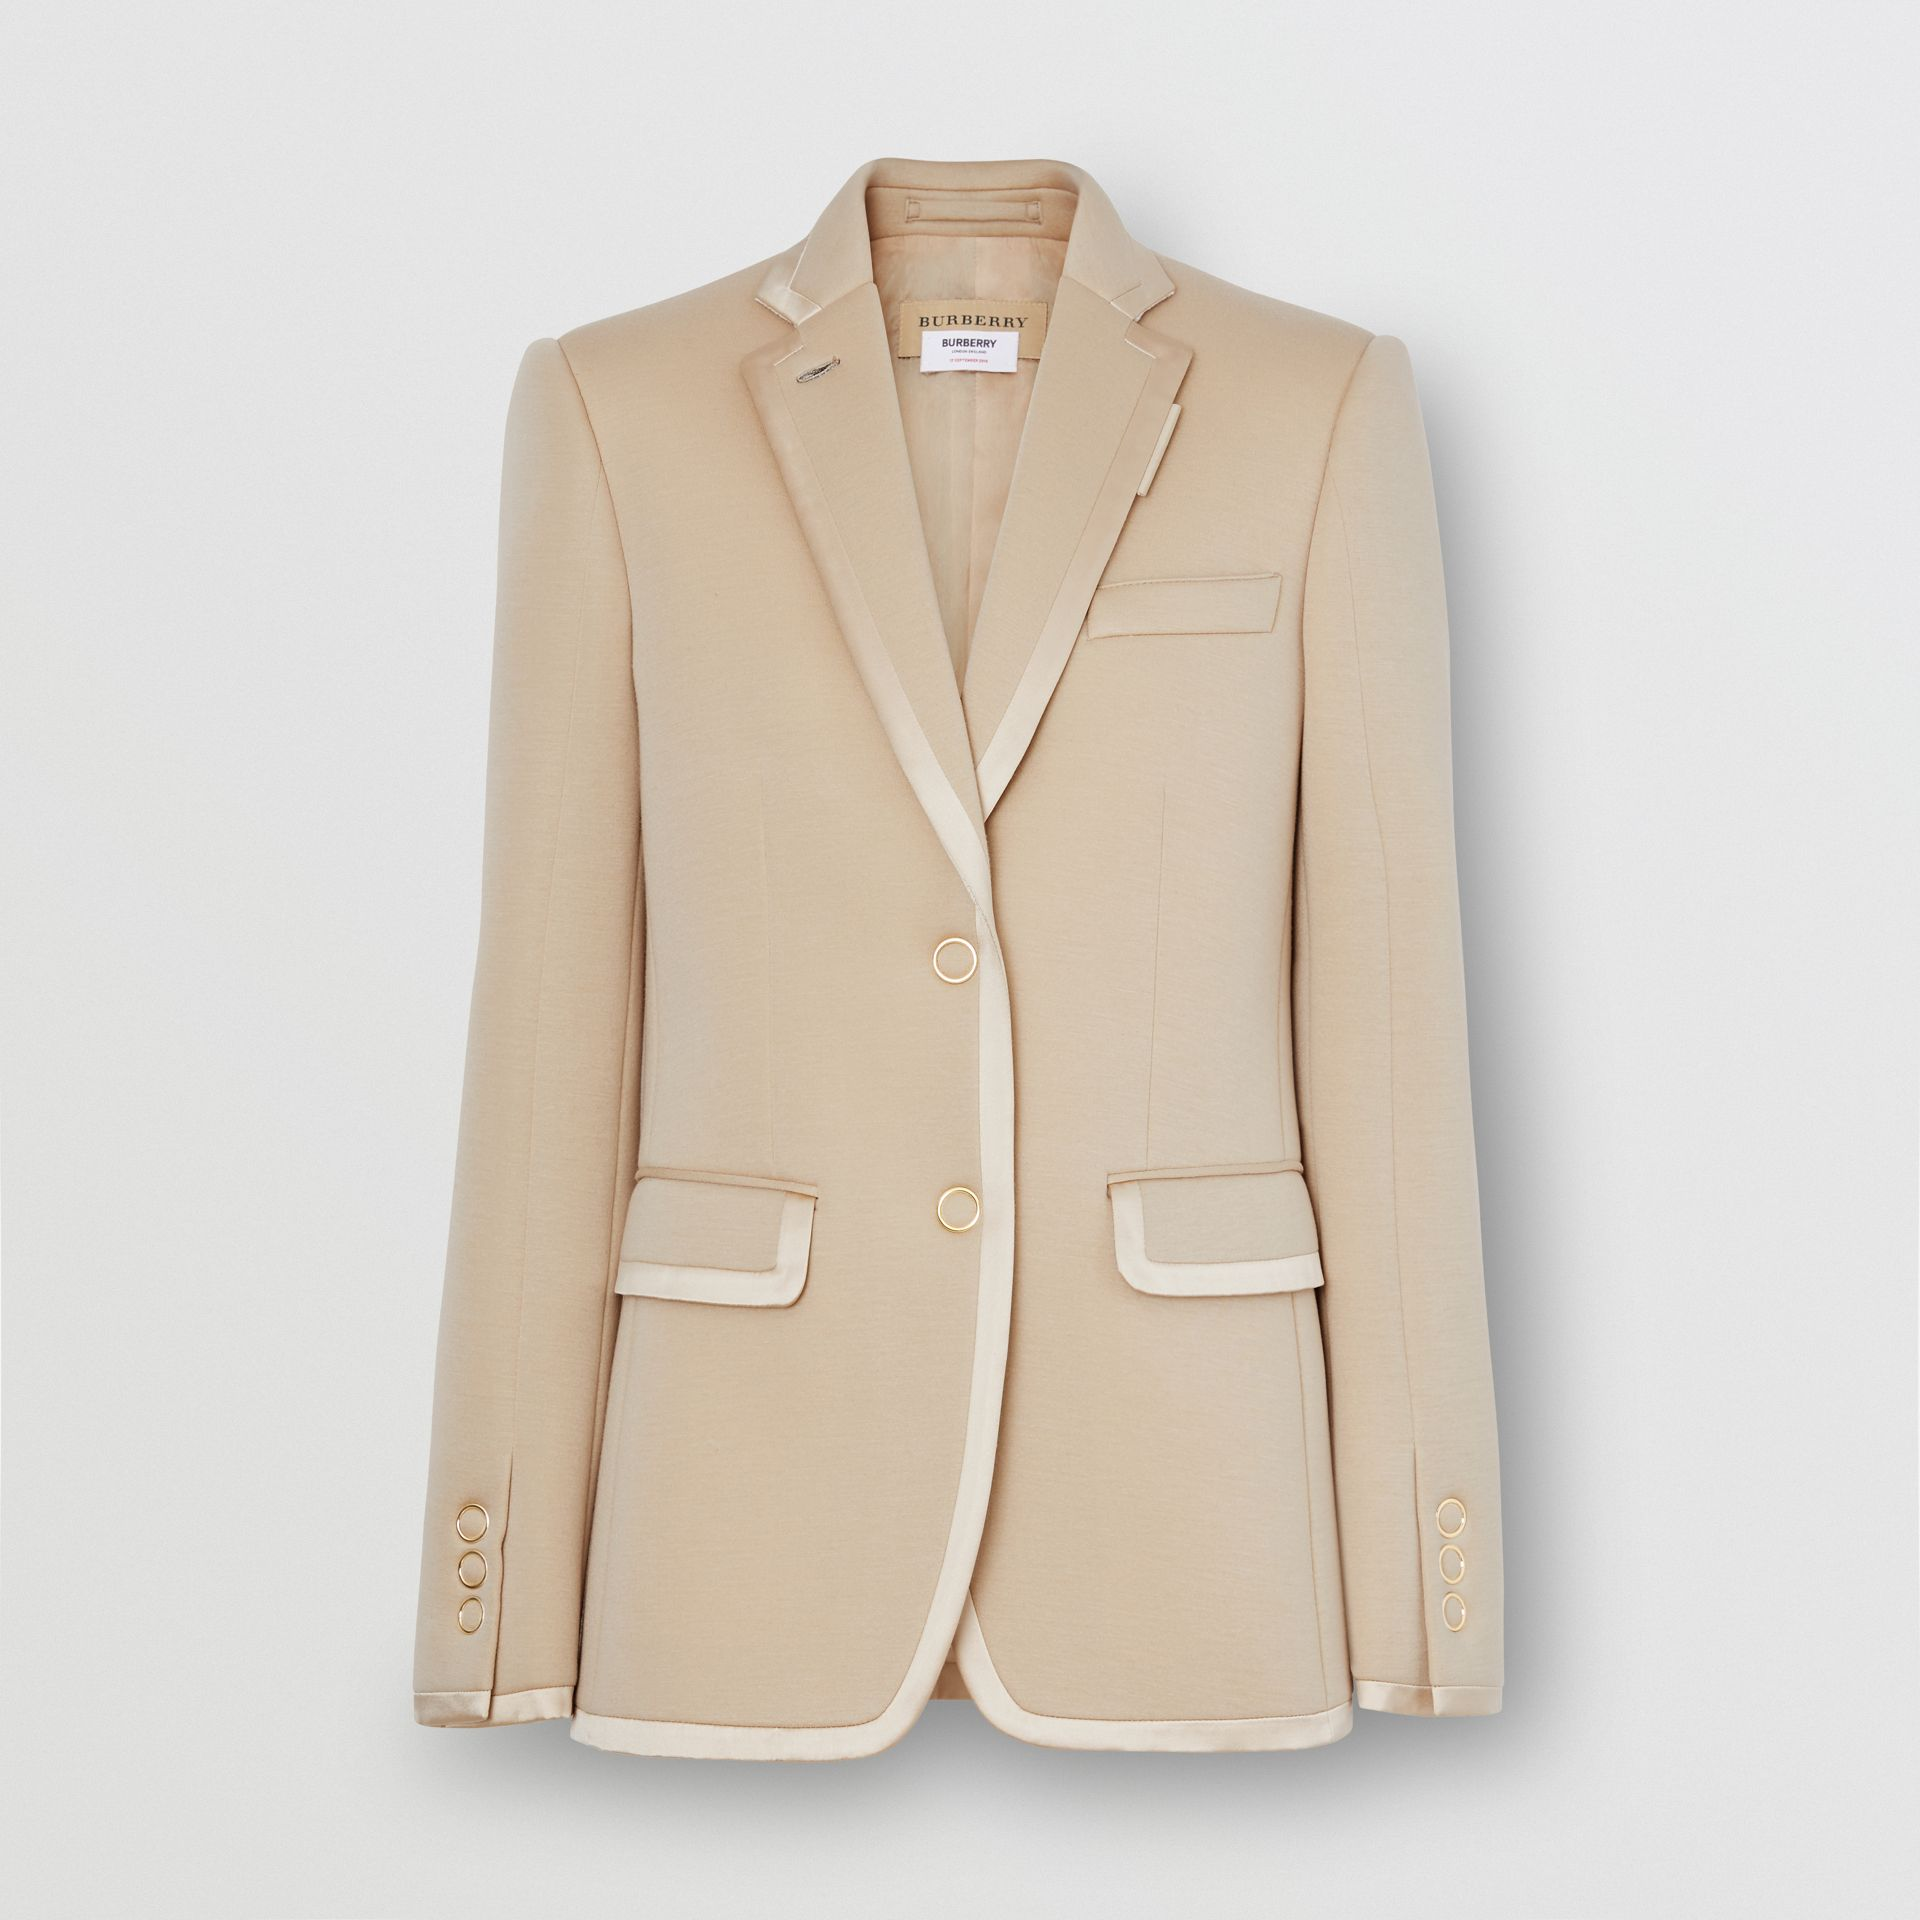 Silk Trim Neoprene Blazer in Teddy Beige - Women | Burberry - gallery image 3